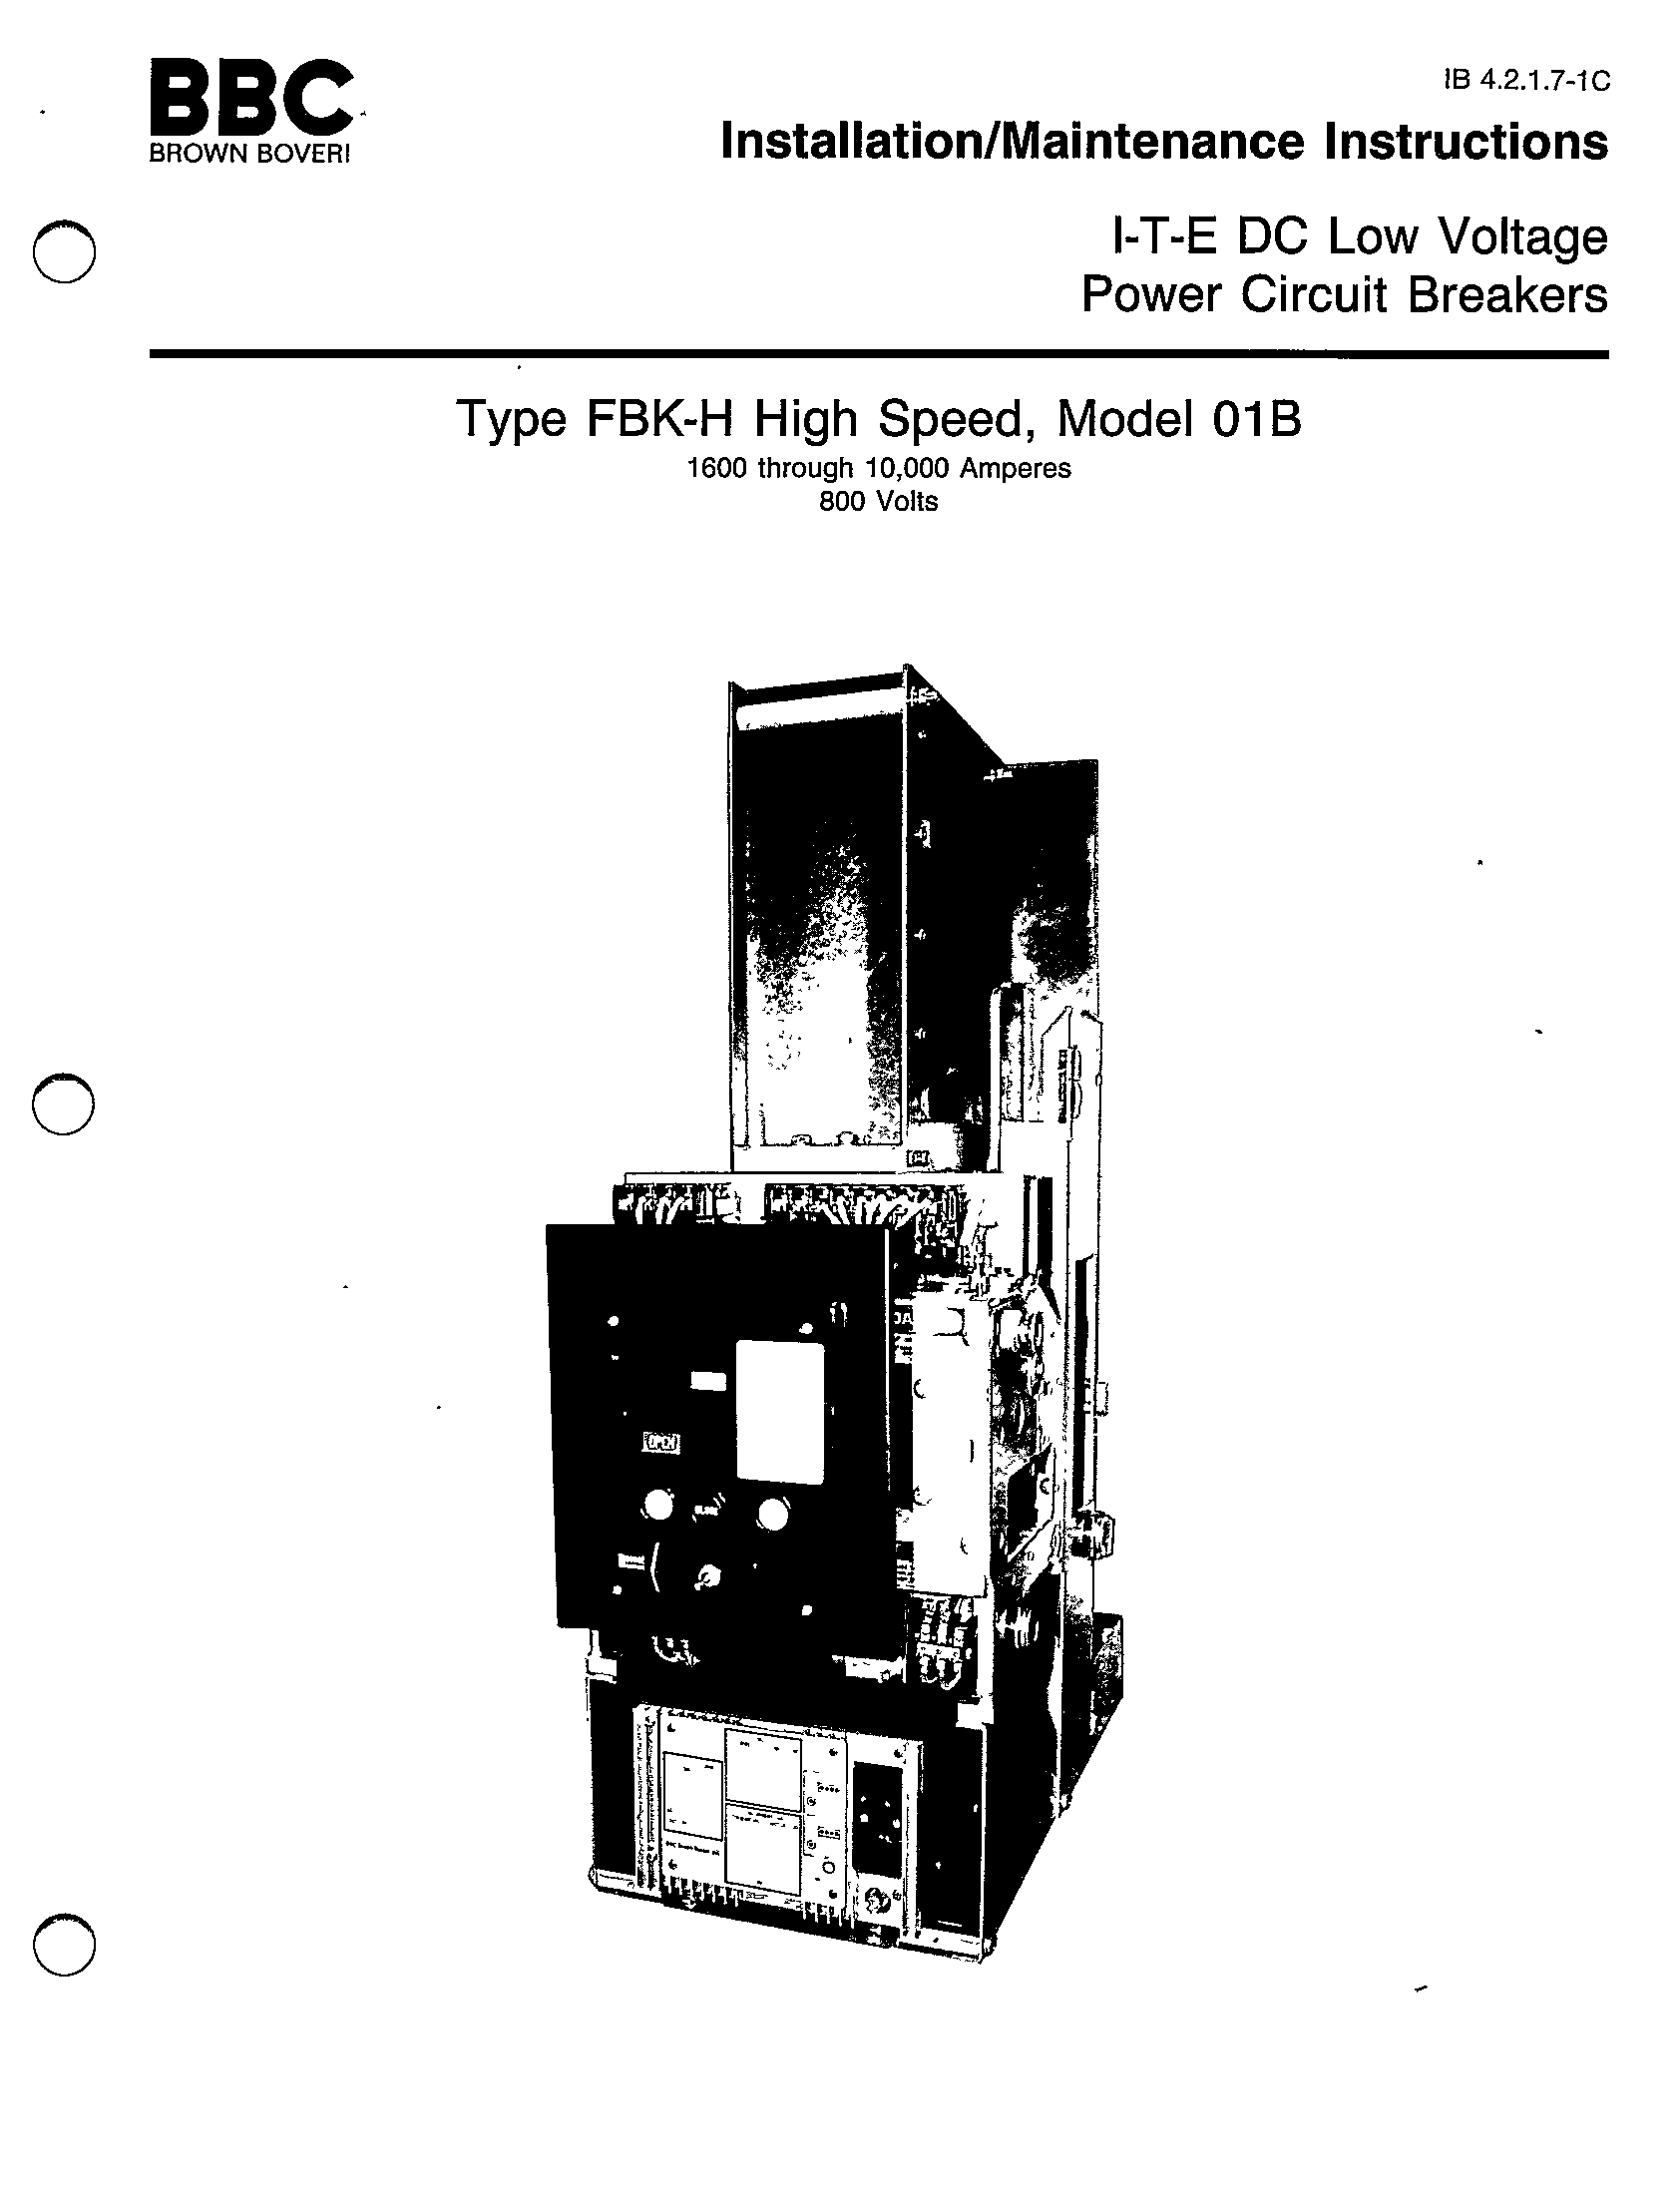 ITE DC LOW VOLTAGE POWER CIRCUIT BREAKERS TYPE FBK-H HIGH